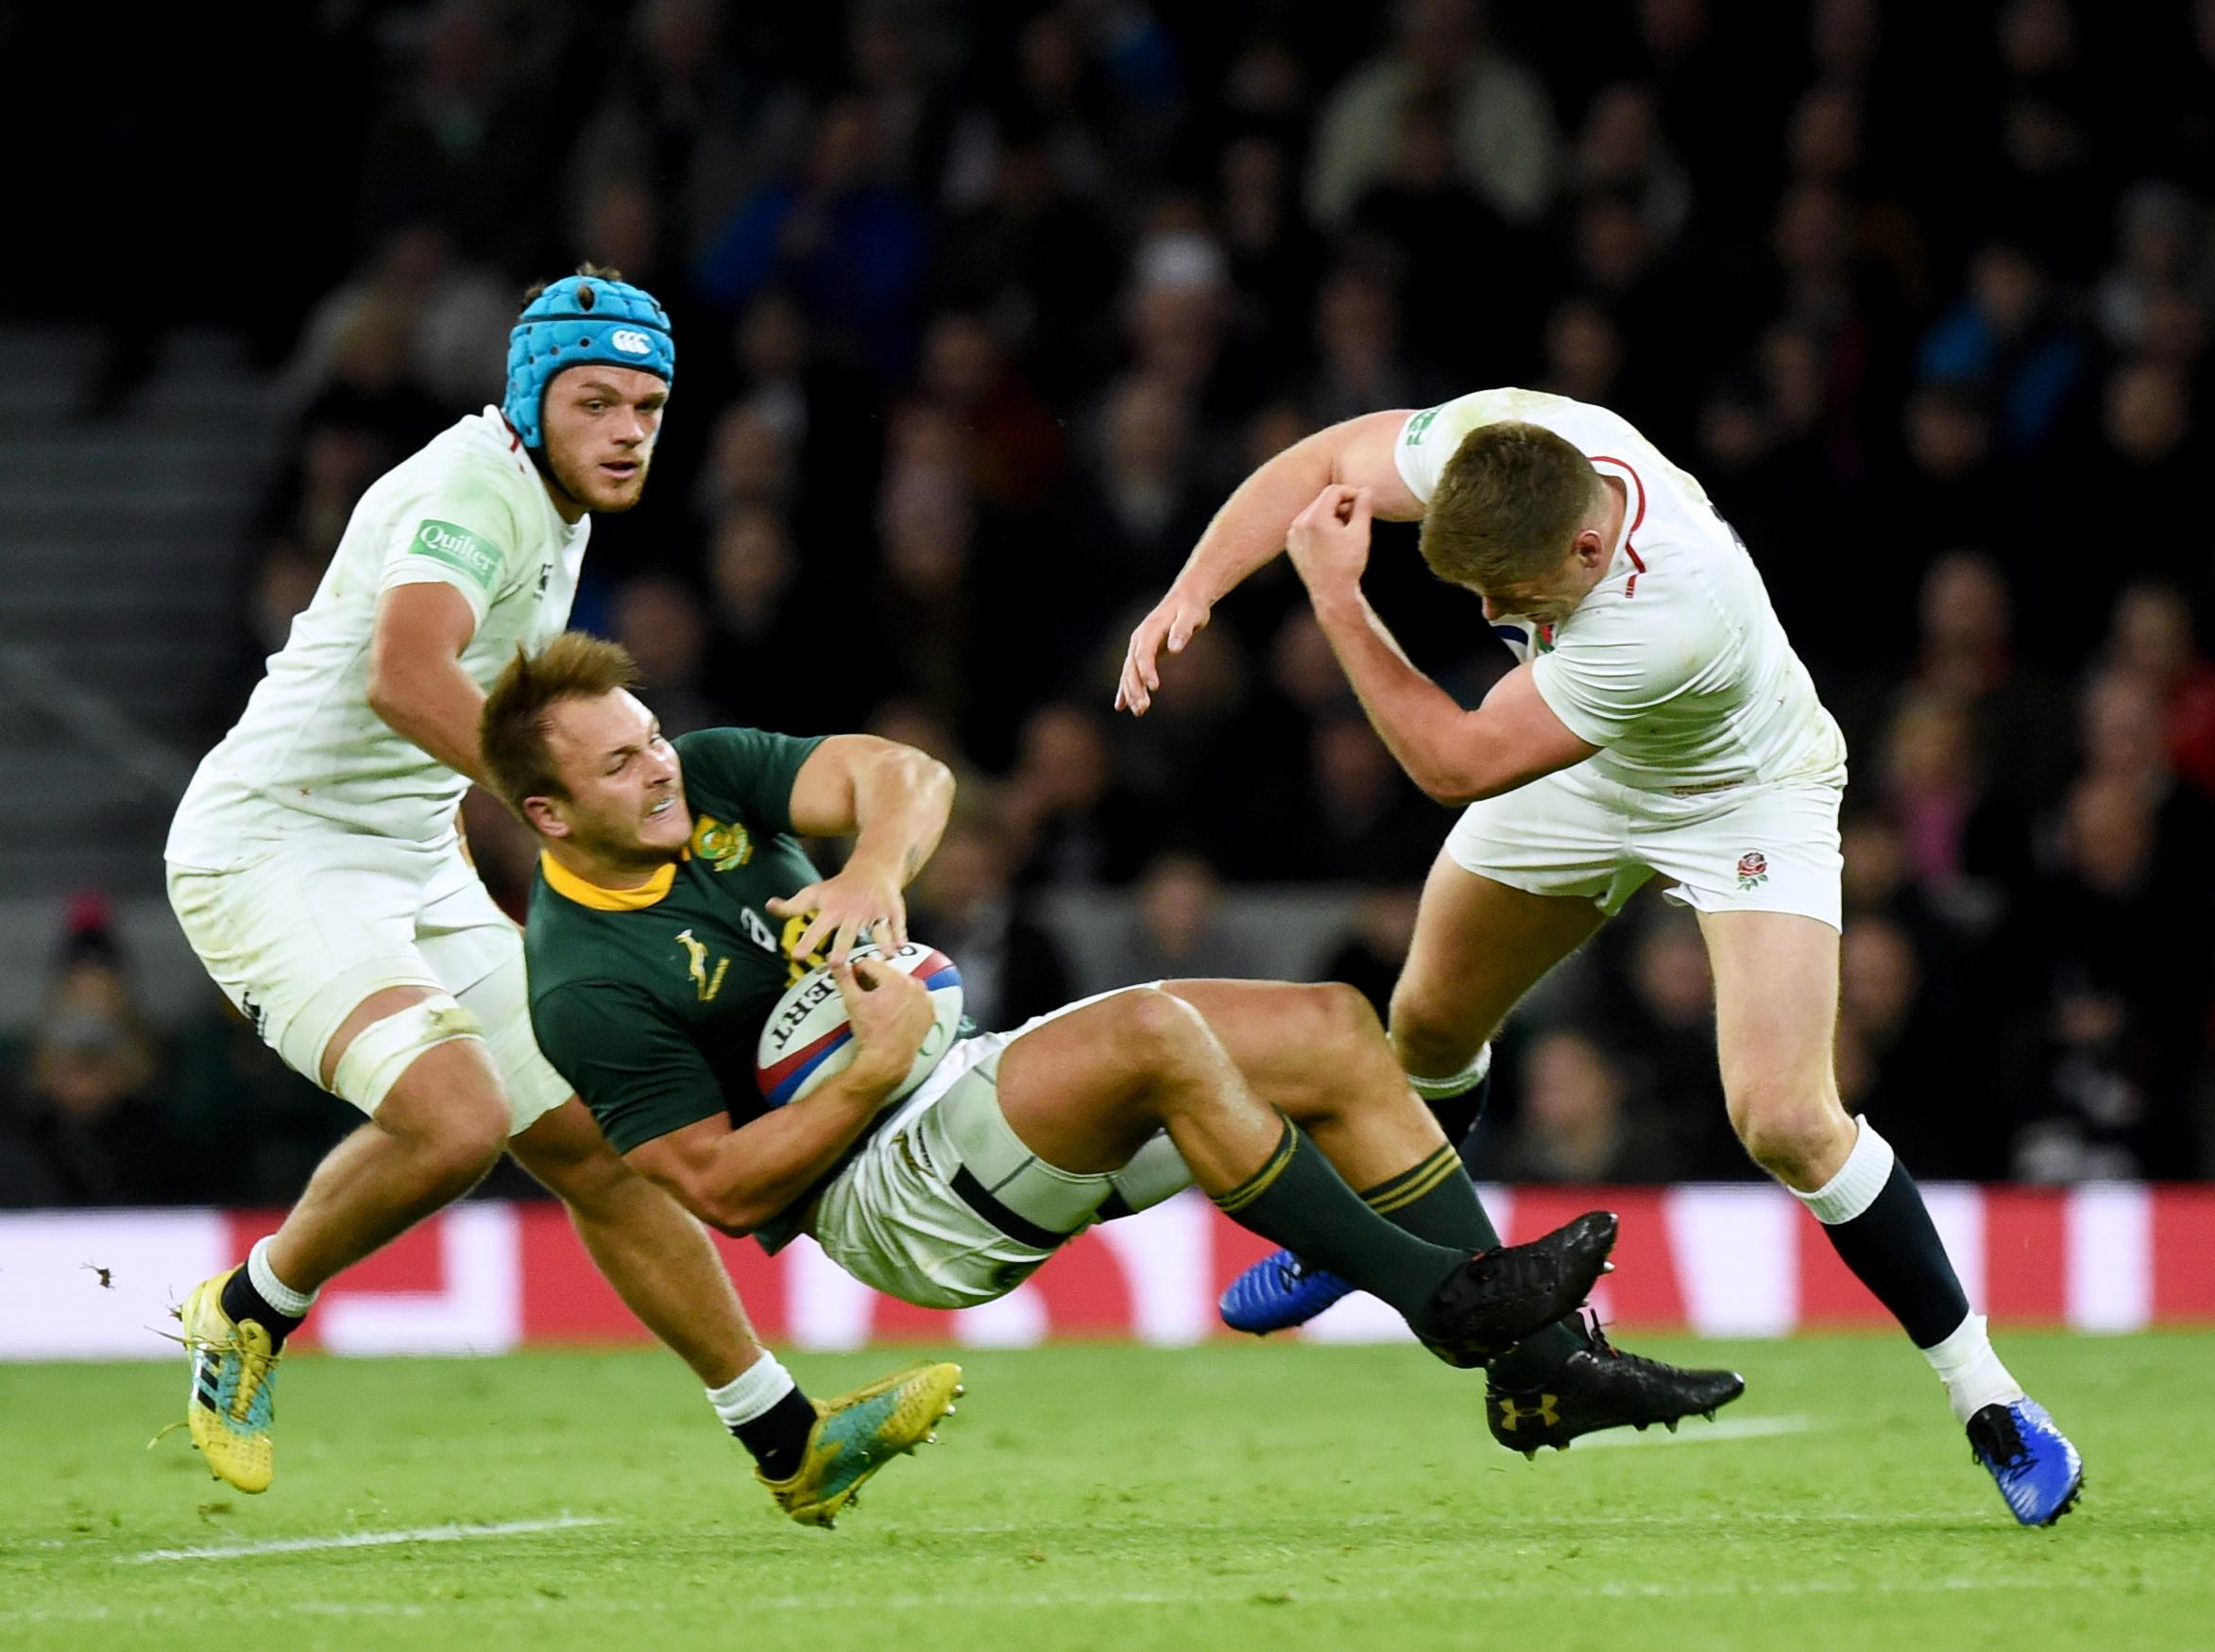 The huge hit knocked the South Africa star off his feet but Farrell has been cleared to face New Zealand